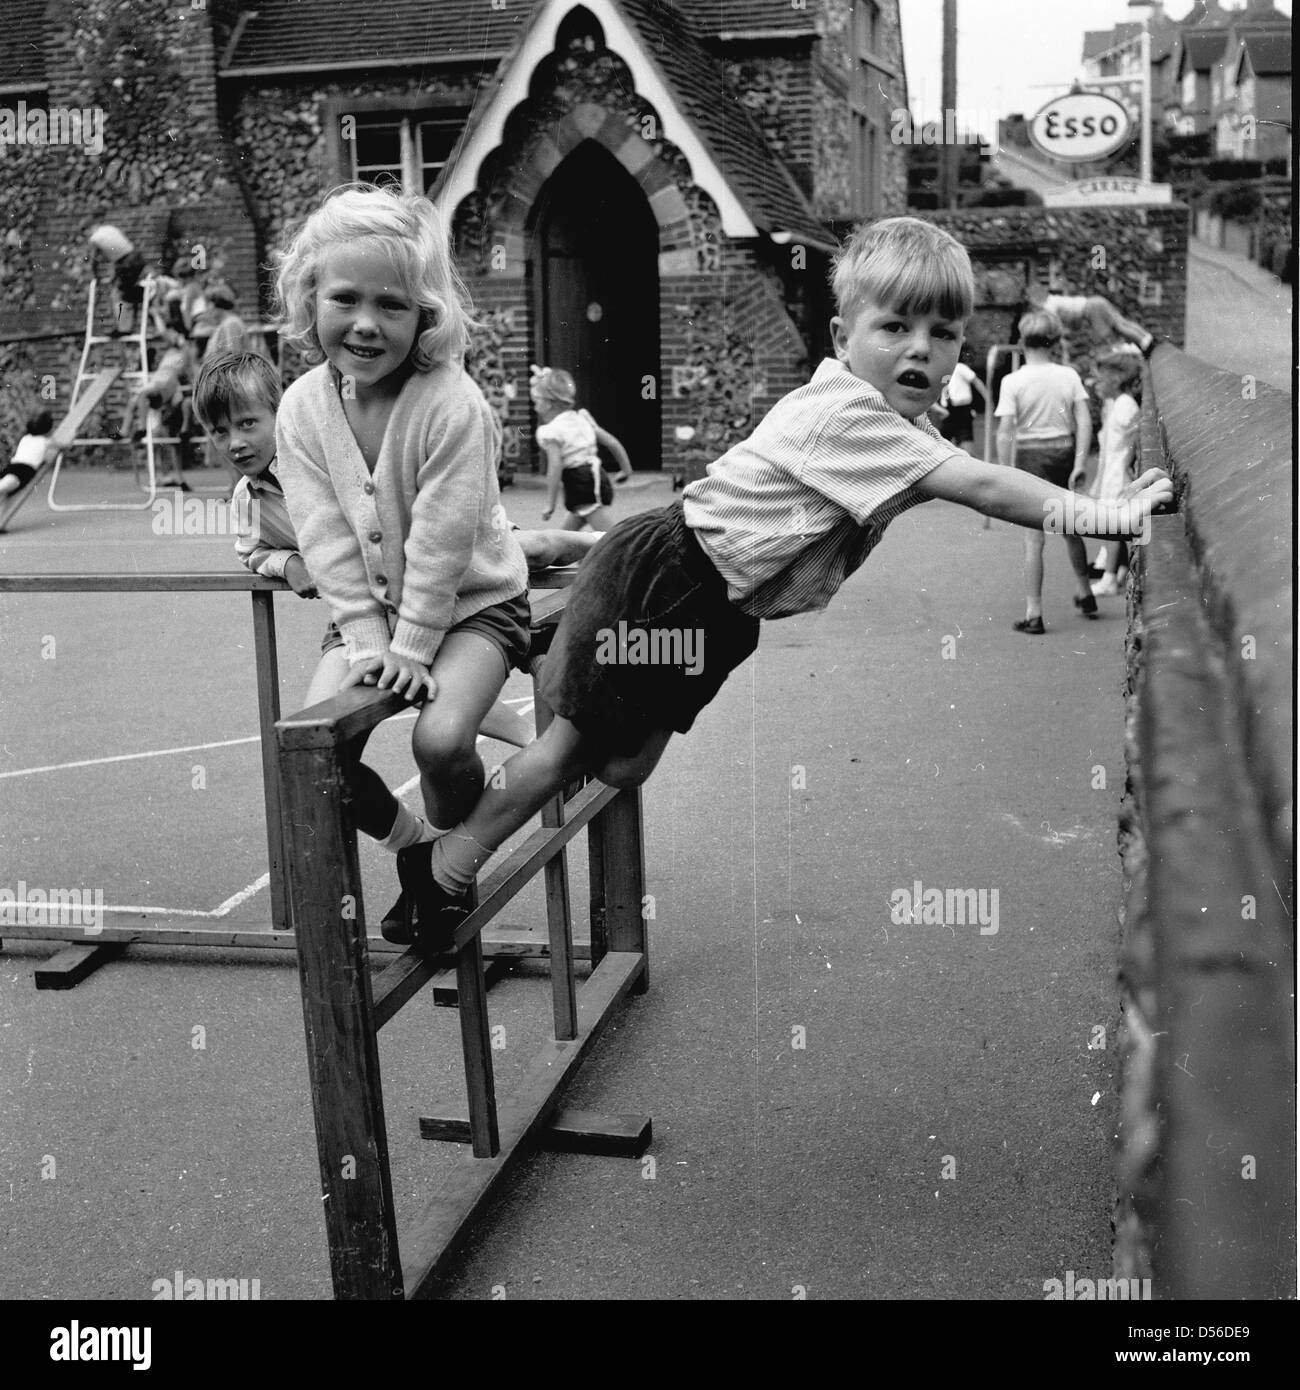 Historical 1950s Young Children Play Outside In The